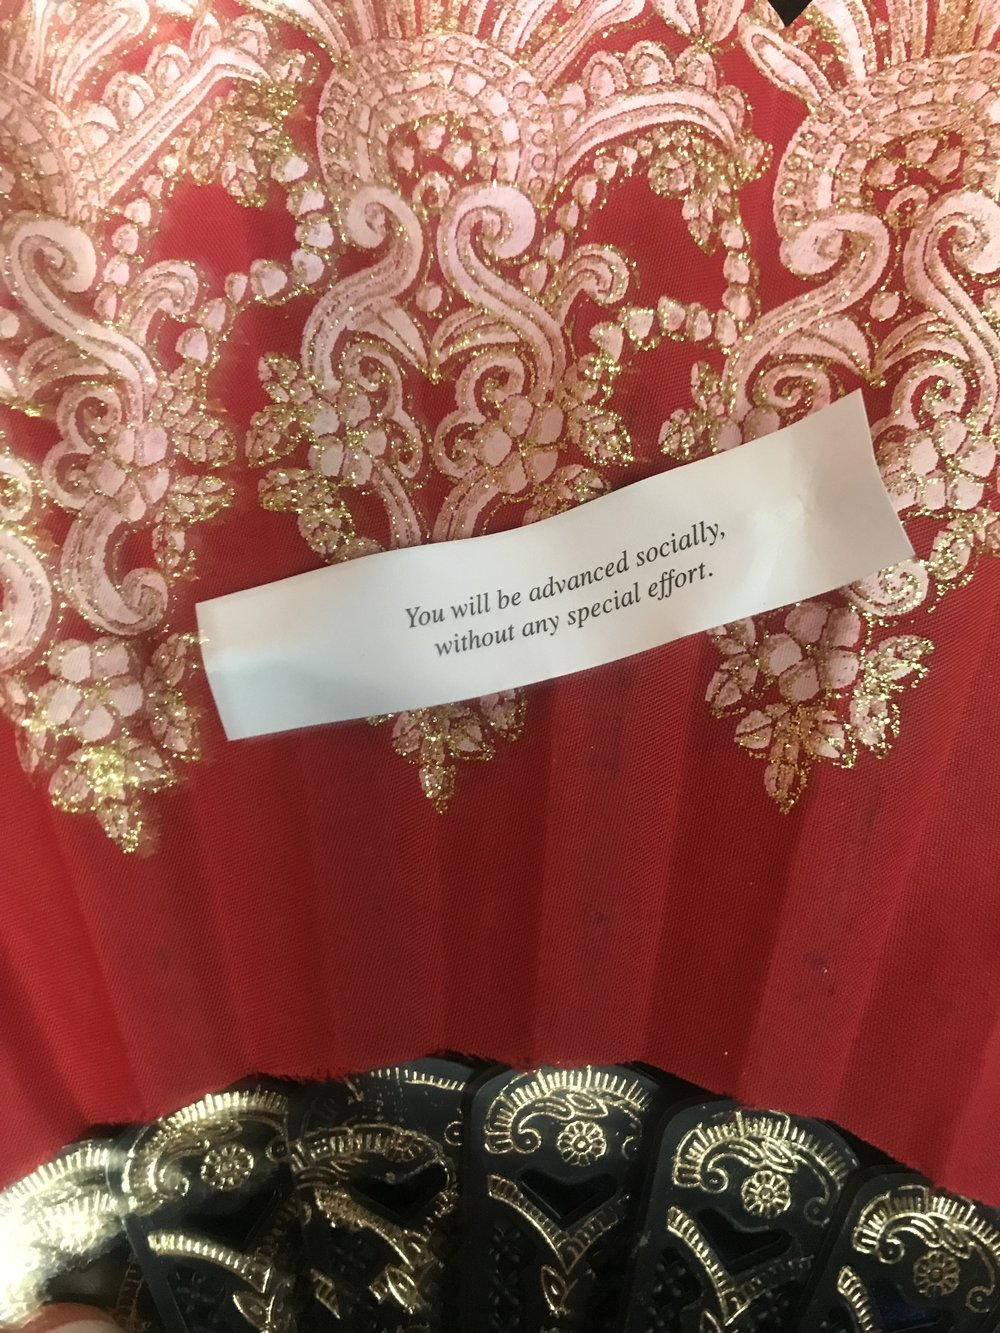 Fortune Cookie - You will be advanced socially without any special effort.